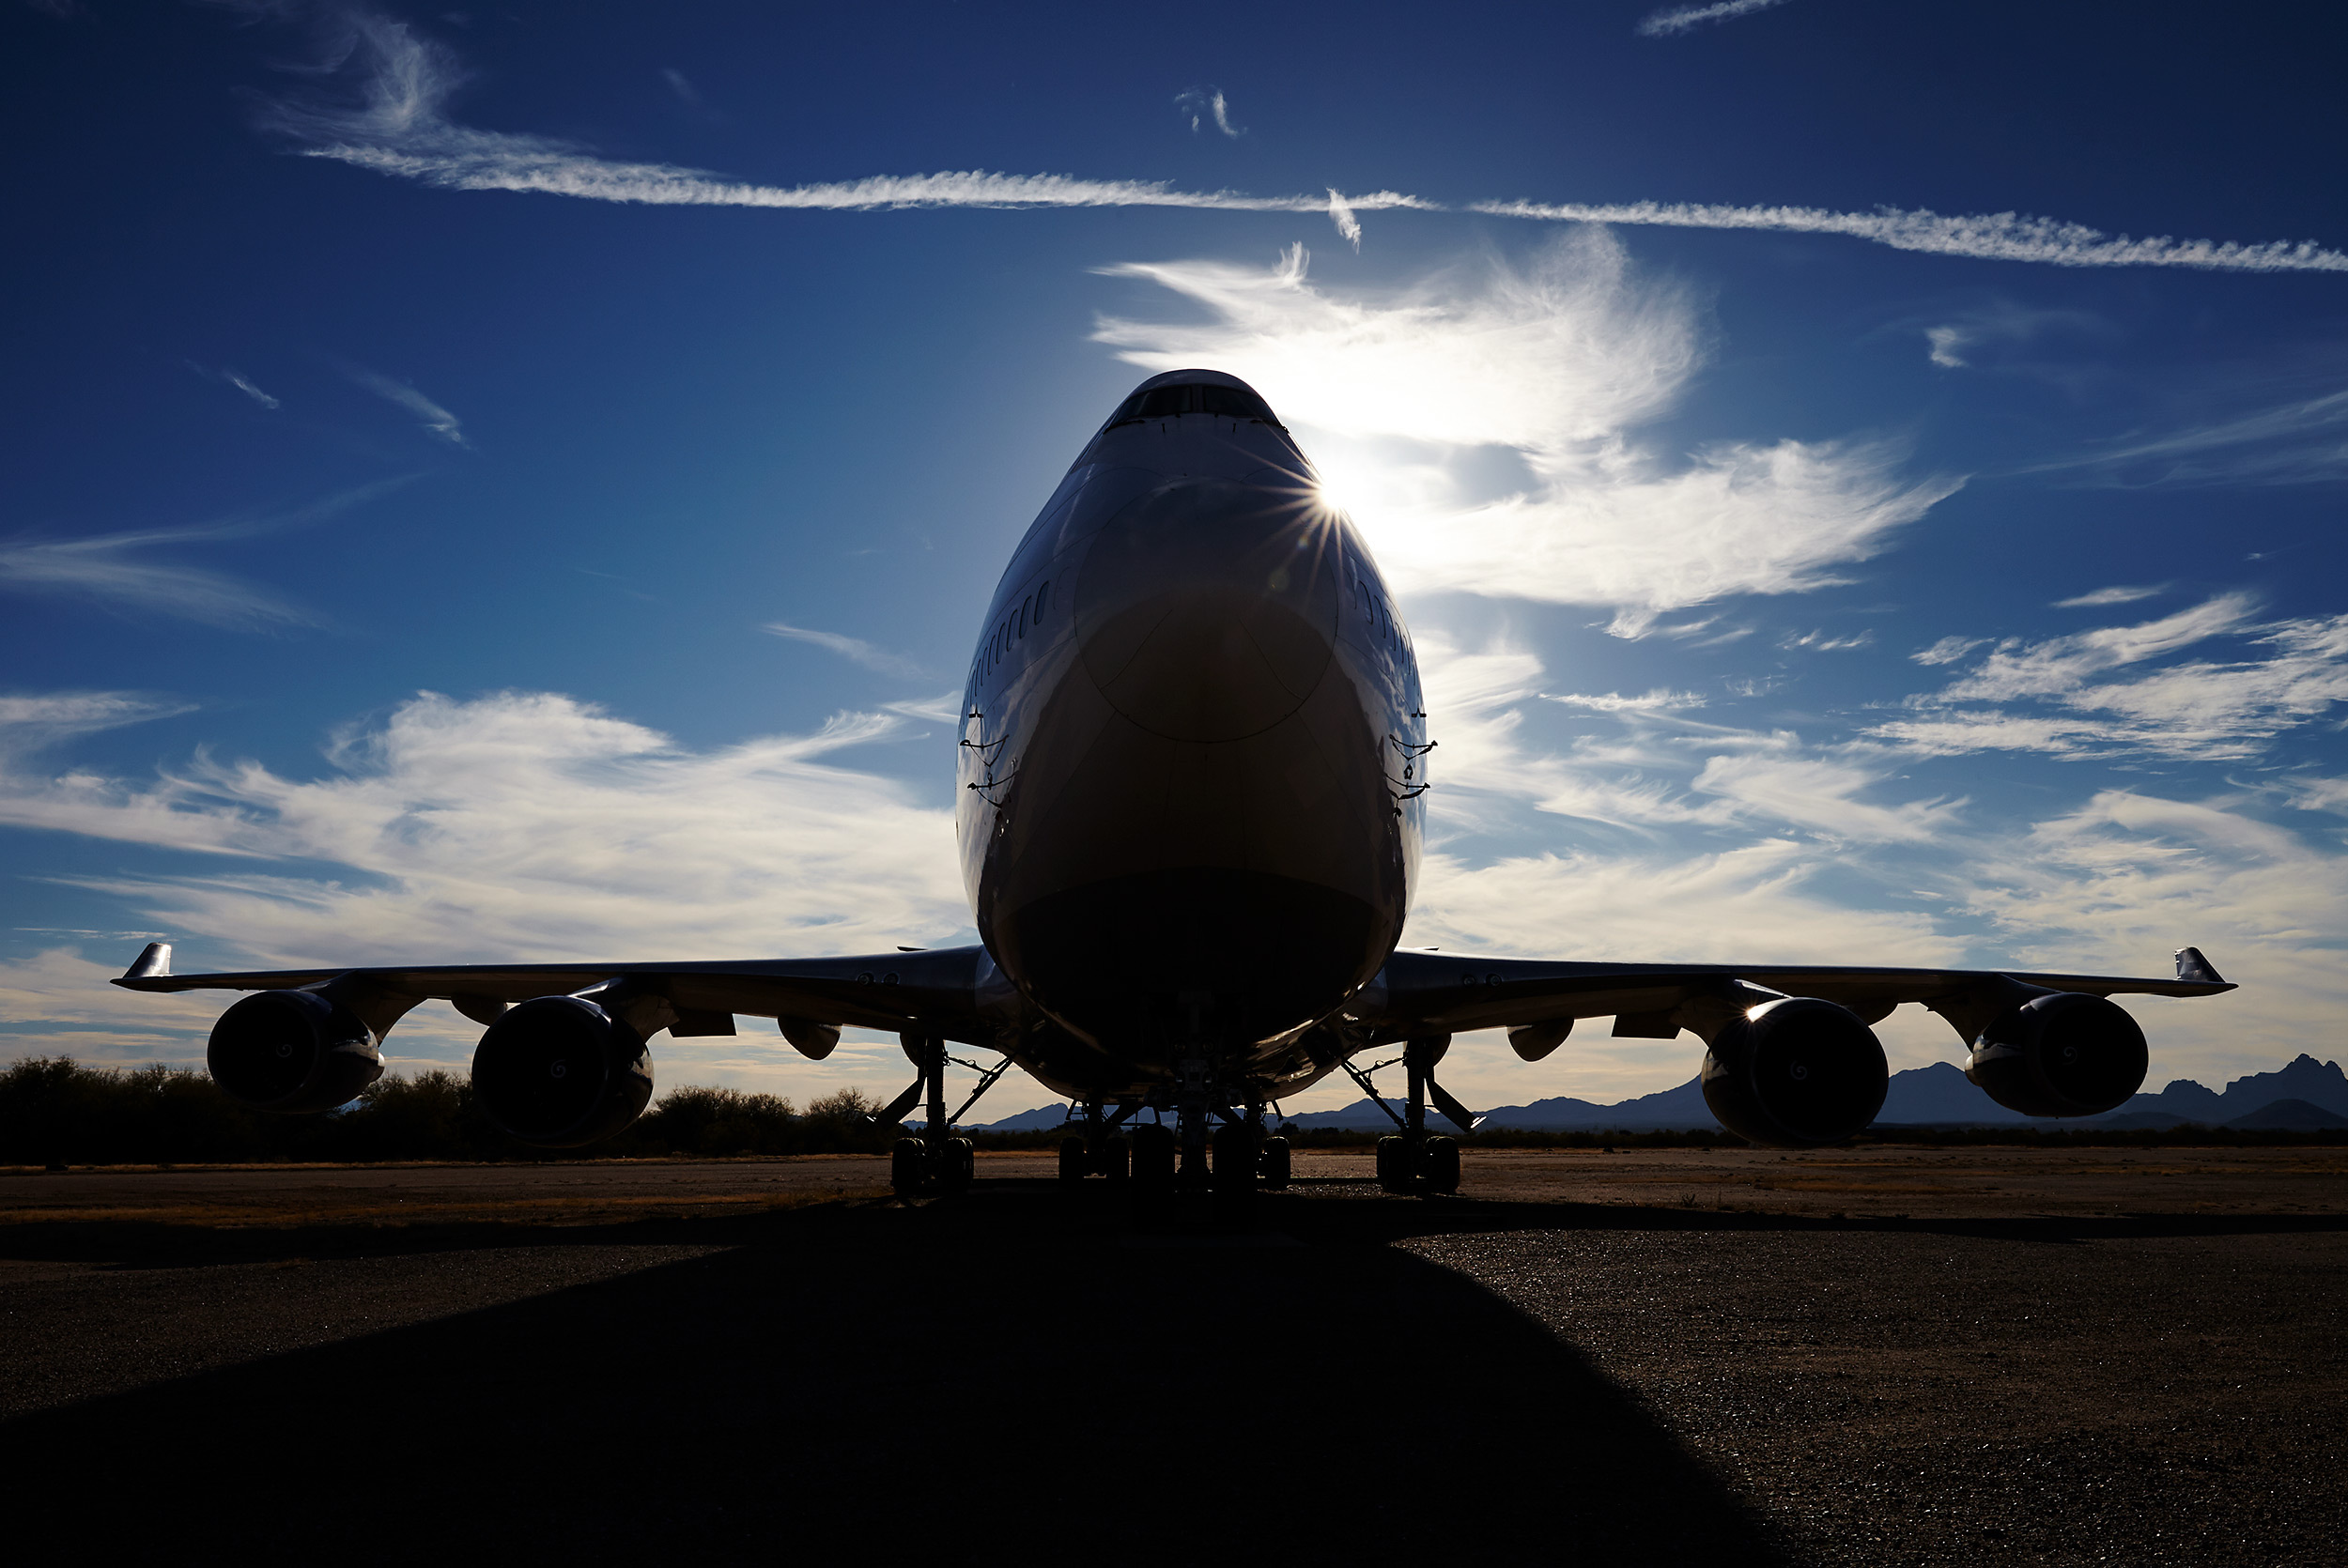 747 parked - Steve Craft Photography - Phoenix Arizona Aviation Photographer